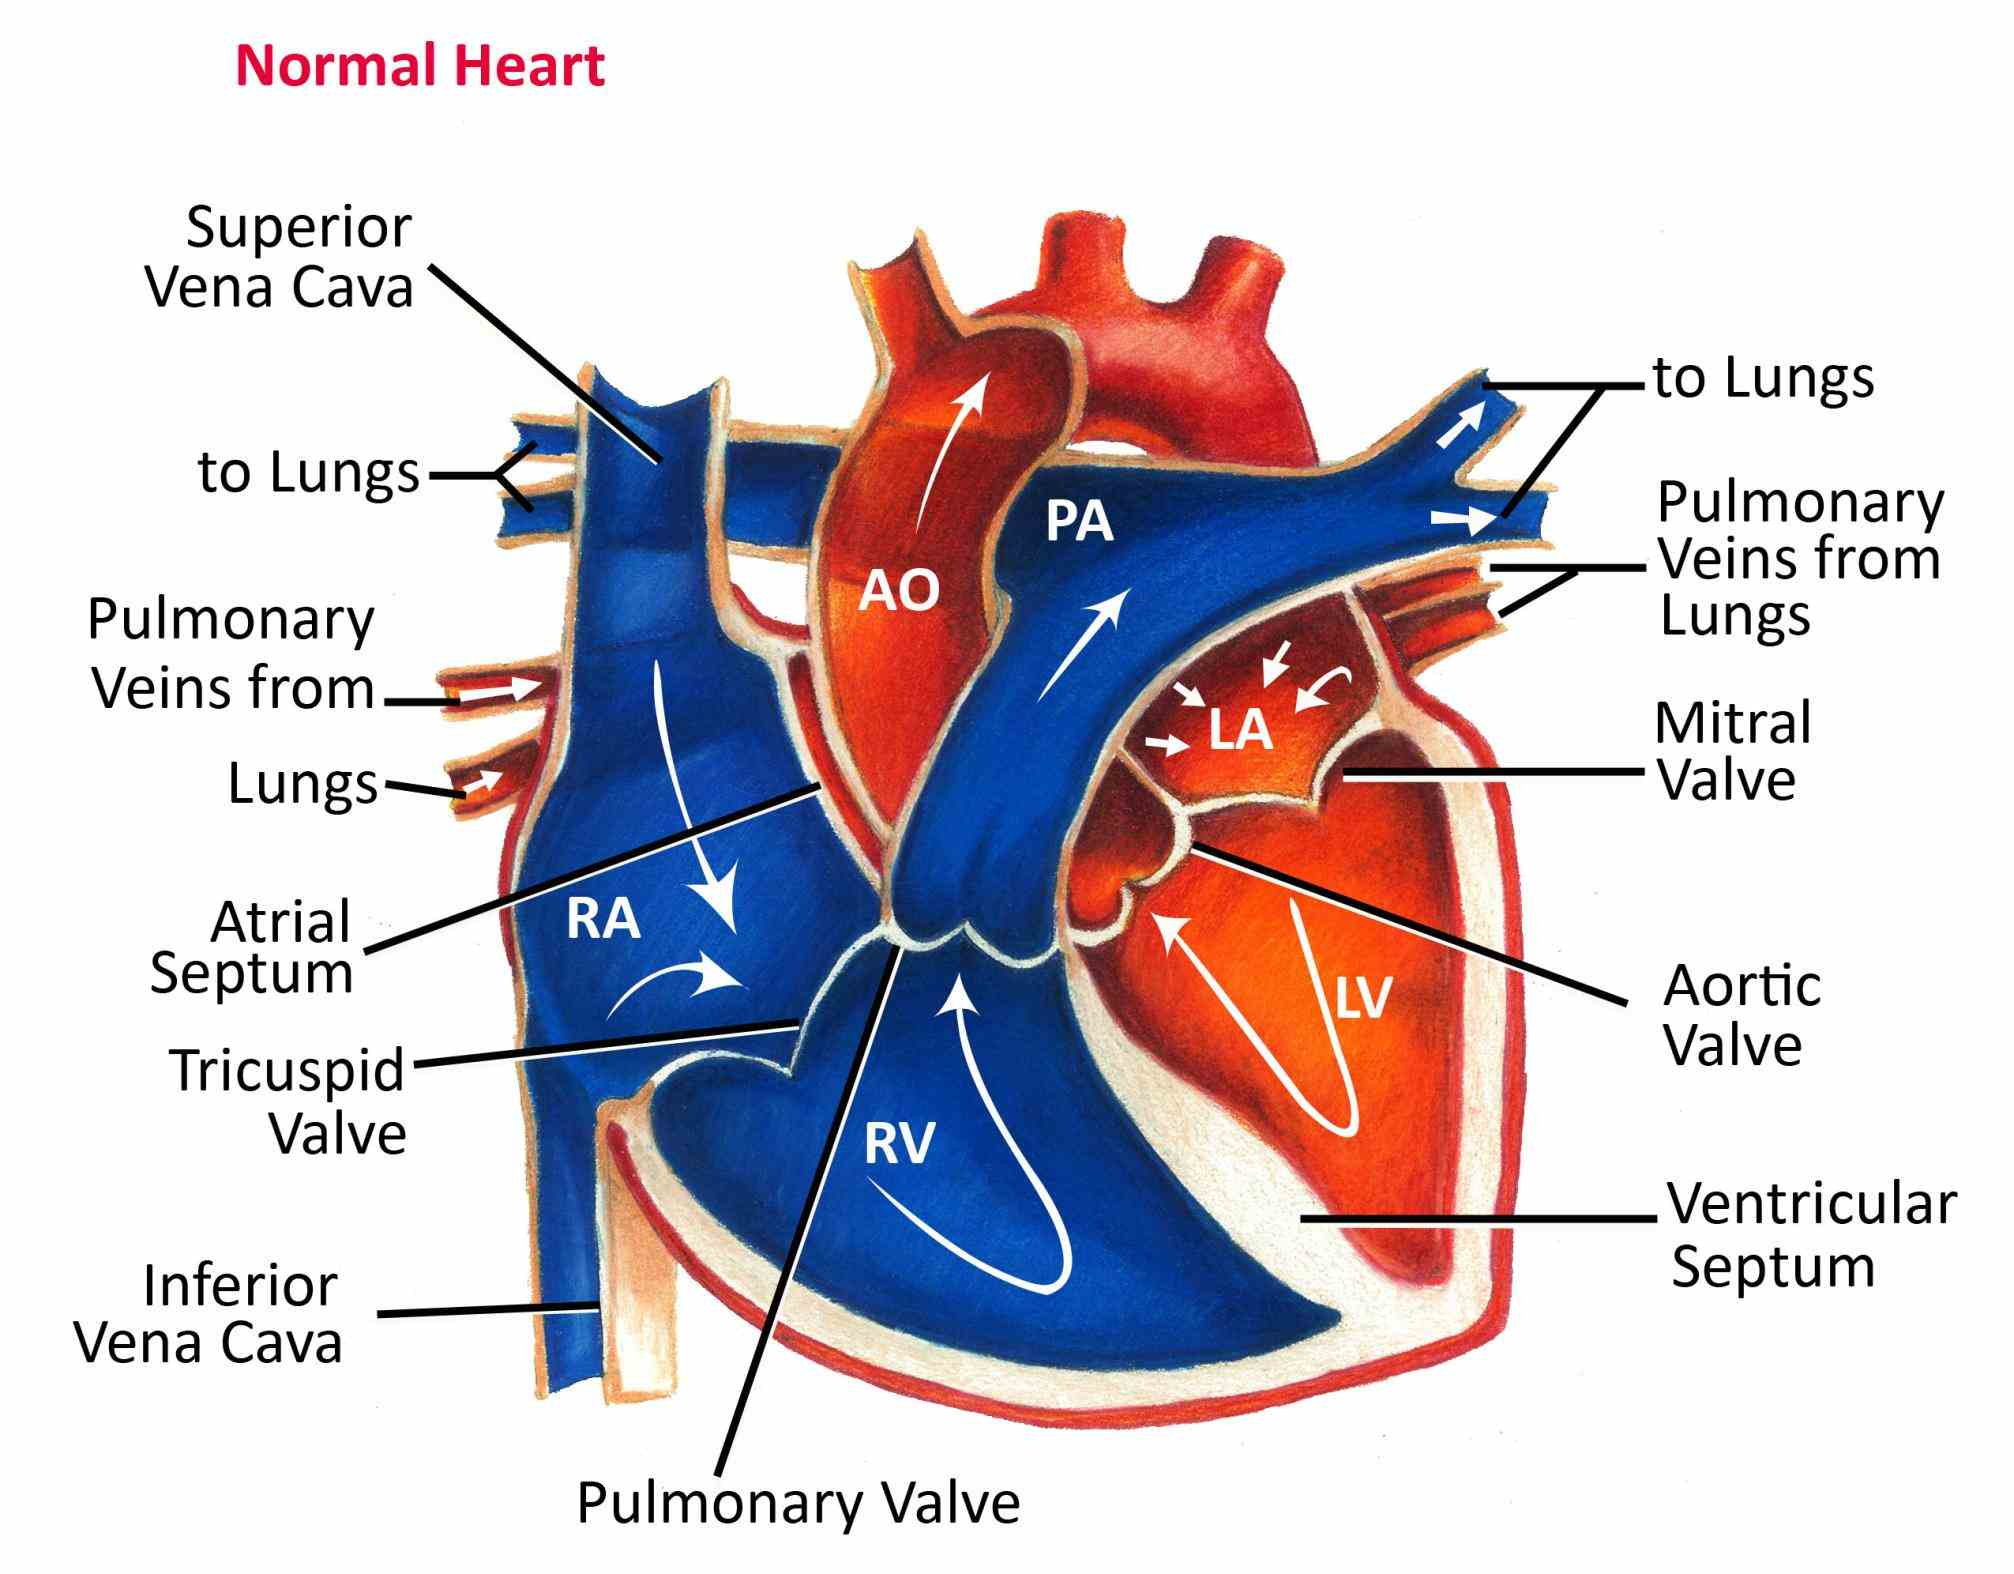 Labeled Diagram Of The Heart And Blood Flow | MedicineBTG.com